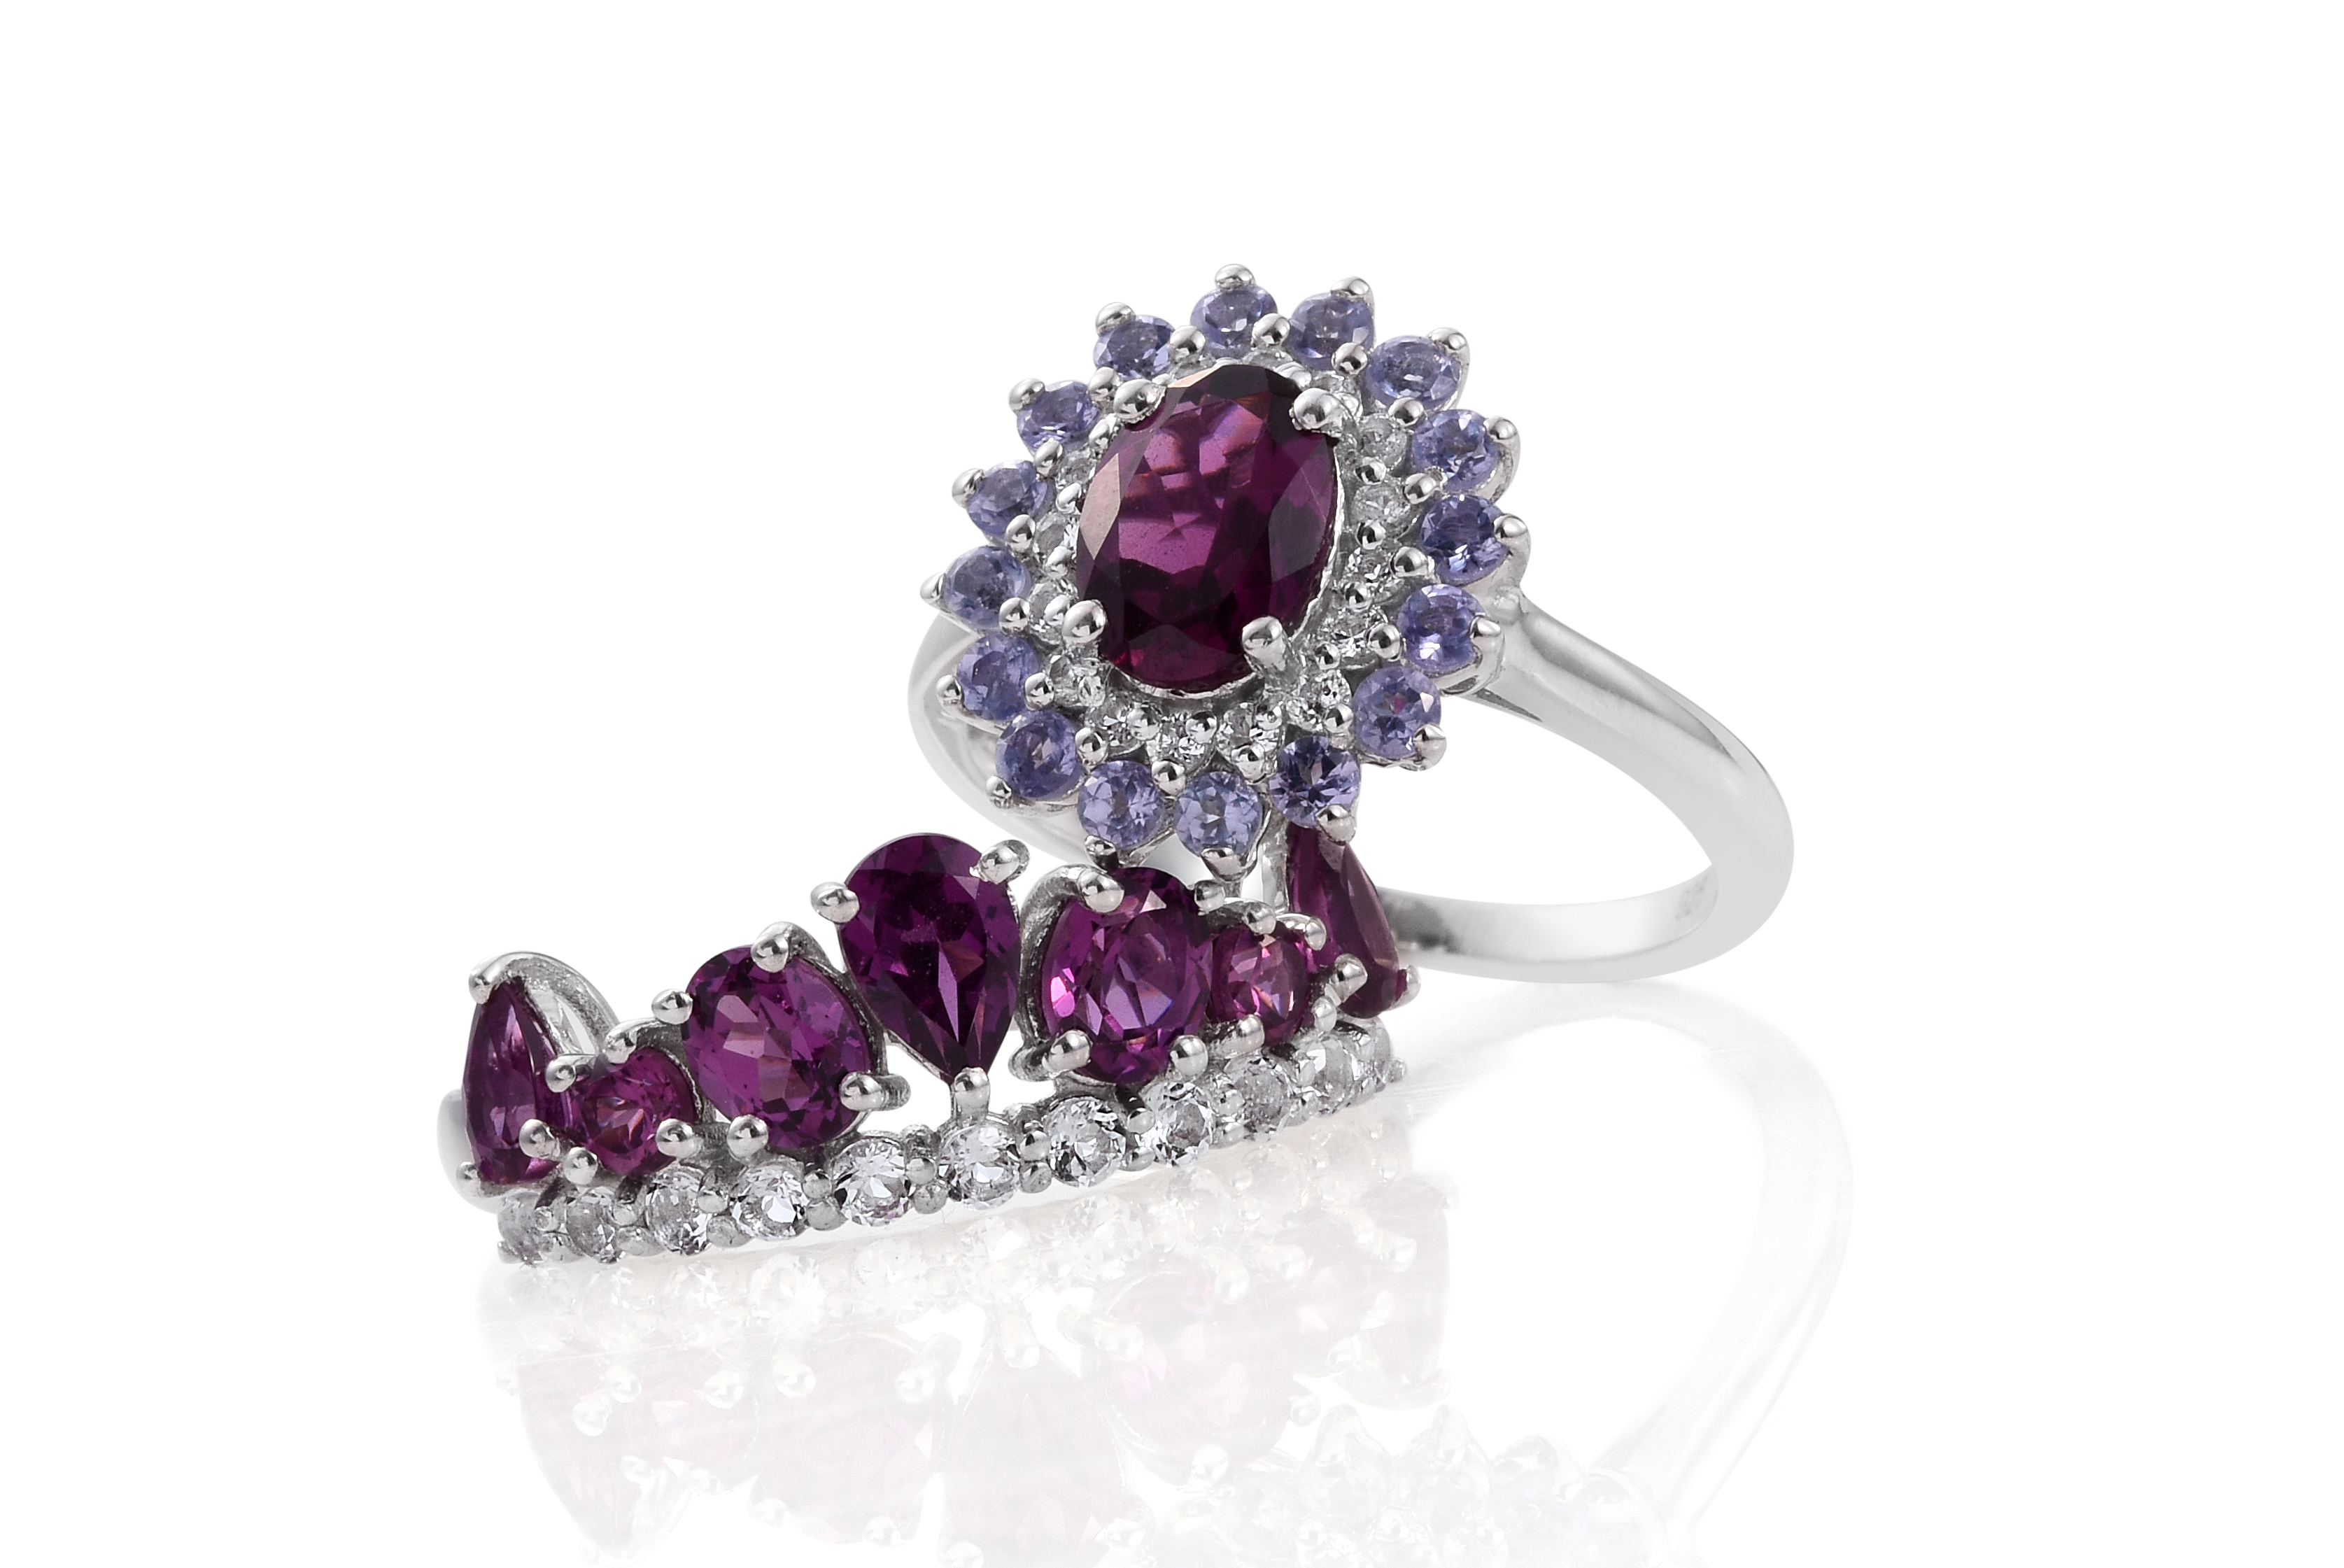 garnet diamond rhodolite ring engagement emerald ori details cut rings